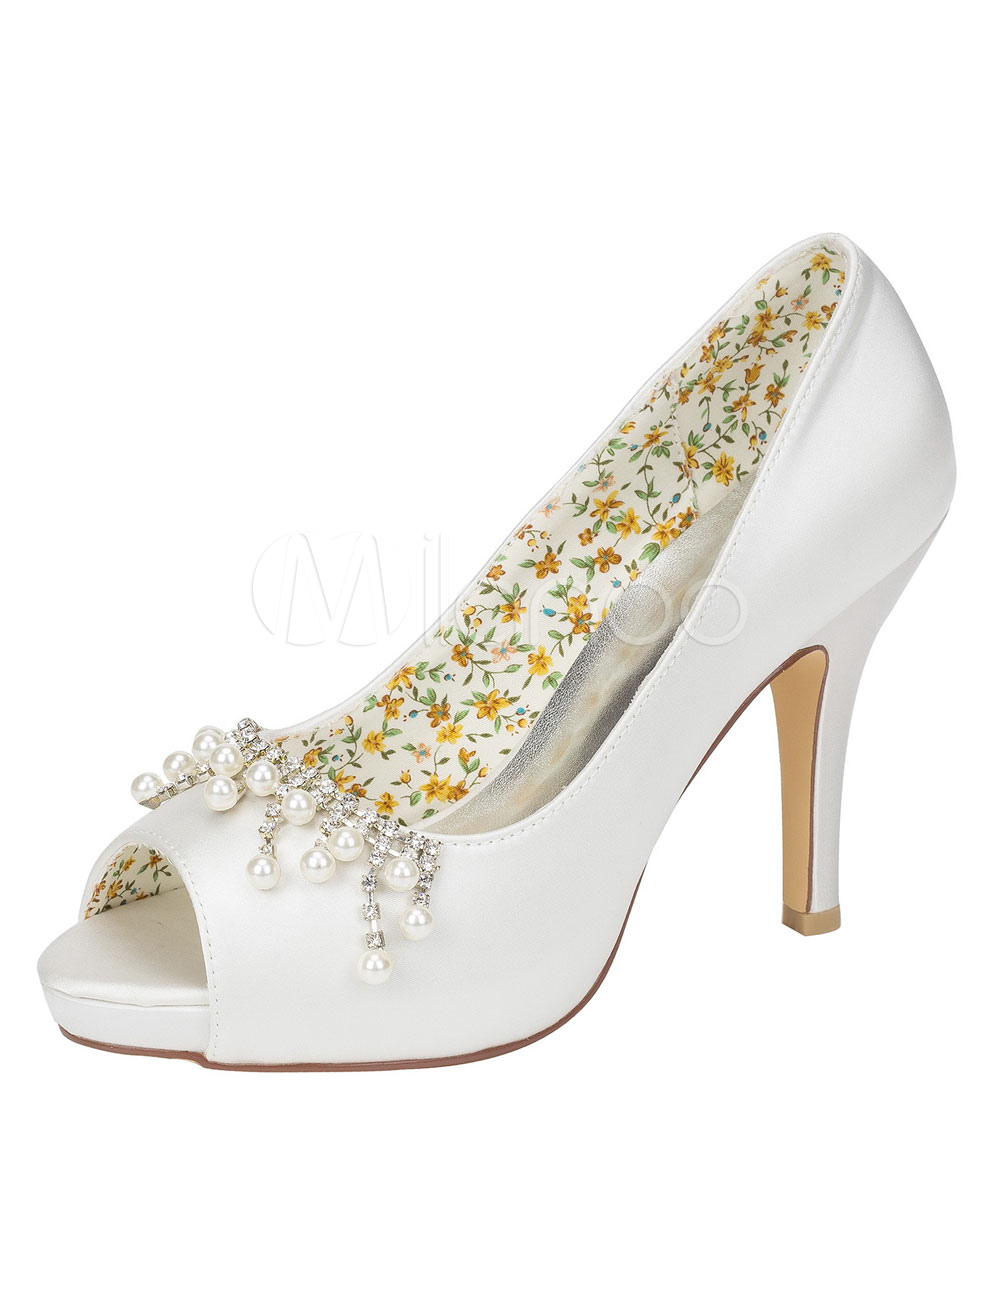 Buy Ivory Wedding Shoes Silk High Heel Pearl Rhinestone Peep Toe Slip On Bridal Pumps for $56.99 in Milanoo store